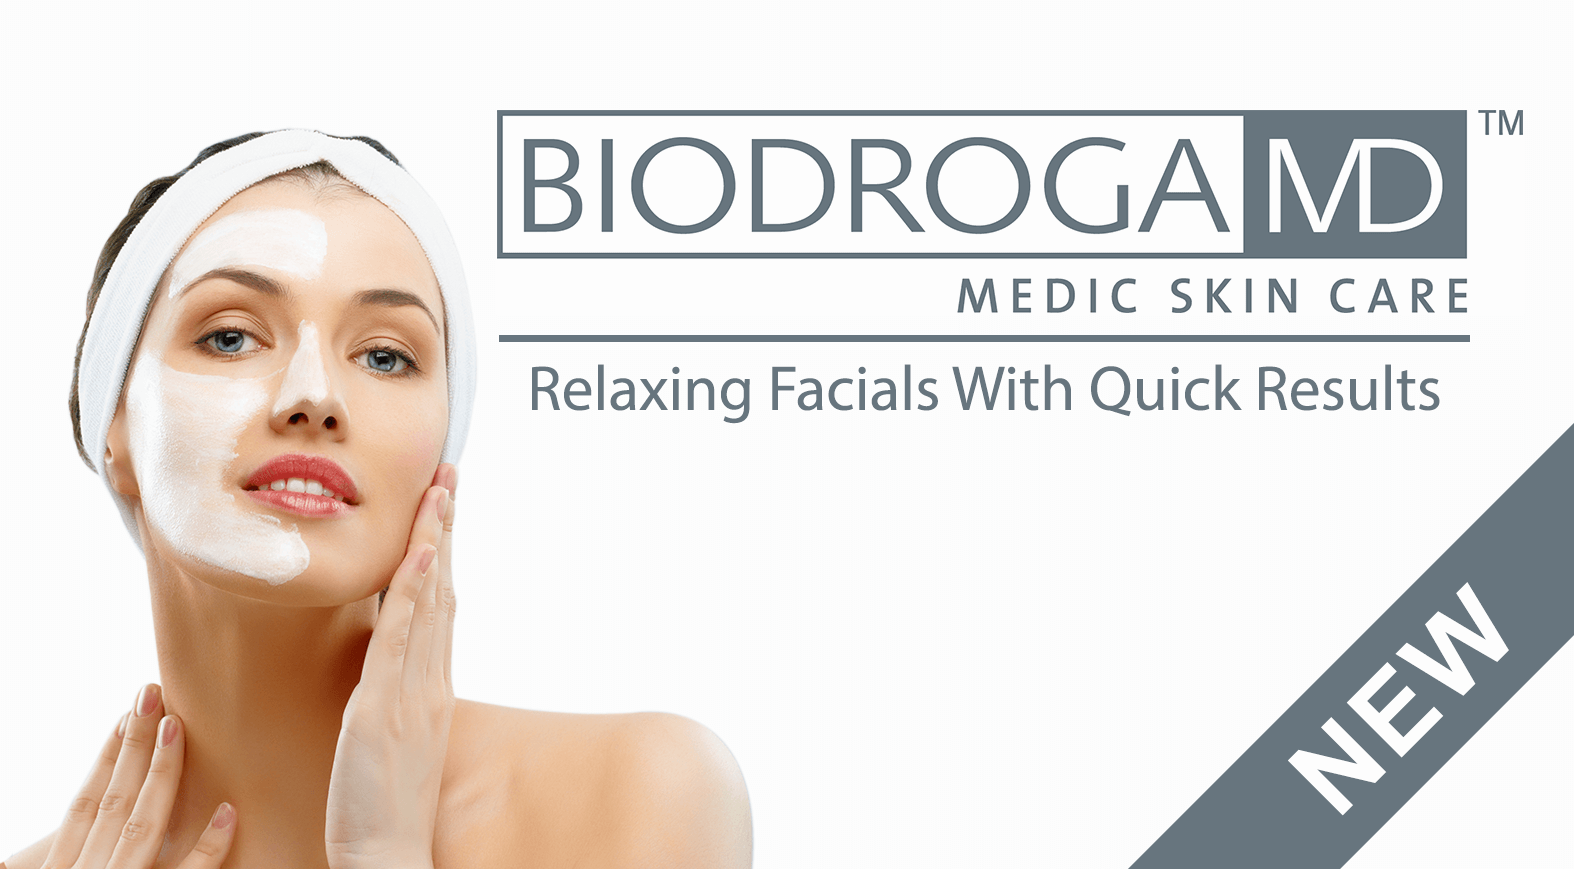 BIODROGA MD Facials